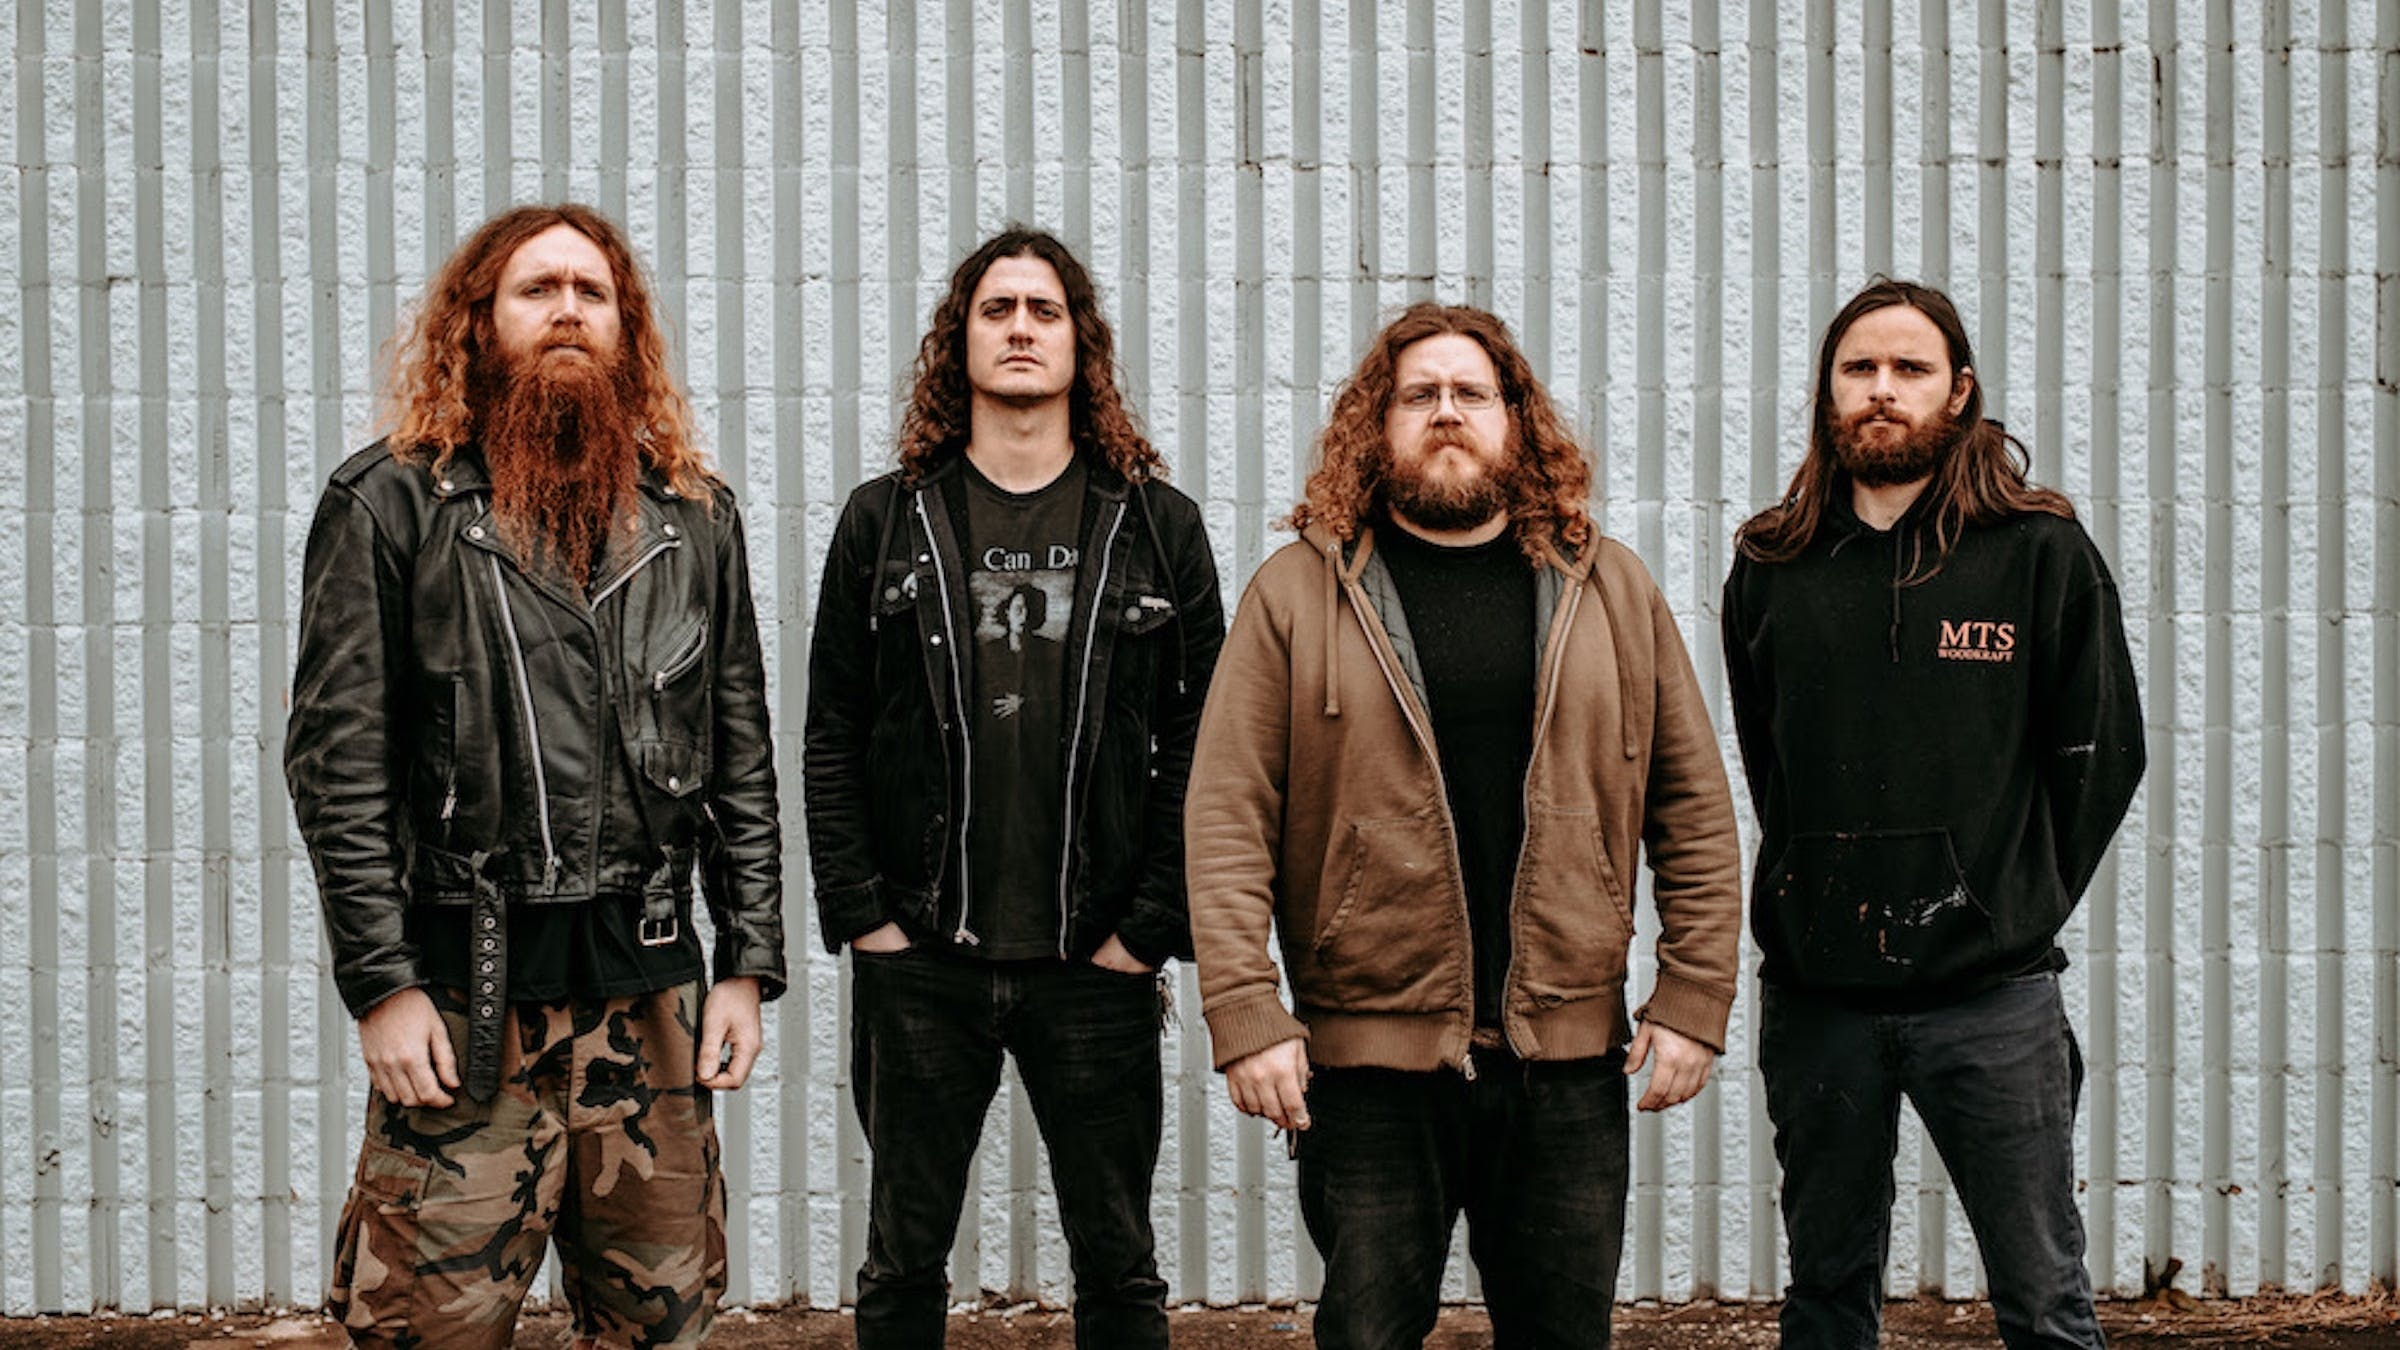 Inter Arma at Rebellion, Manchester on November 3rd 2019